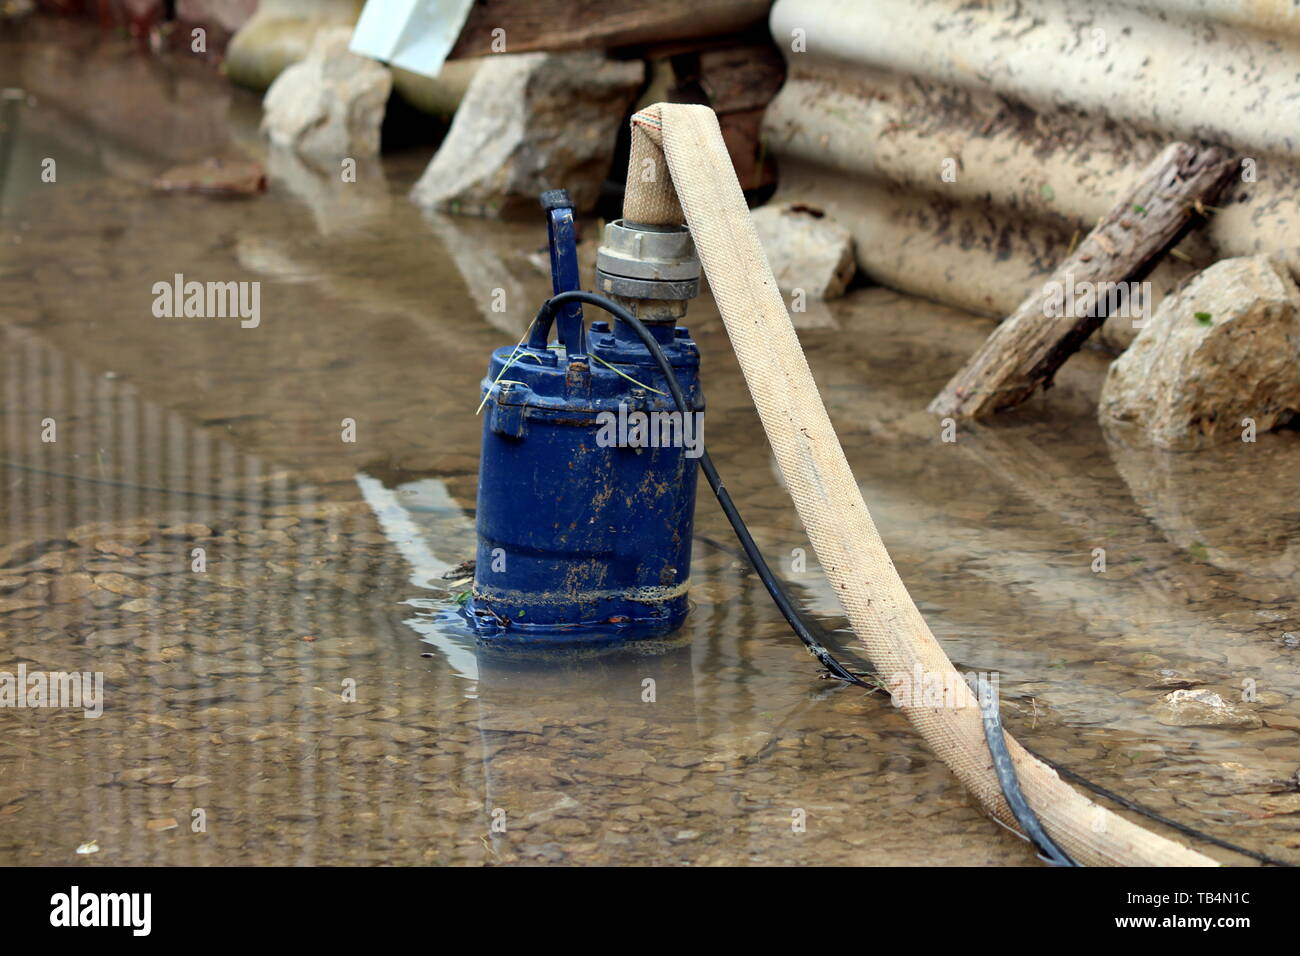 Heavily used old partially submerged metal water pump pumping water from flooded backyard through fire hose surrounded with rocks and gravel - Stock Image